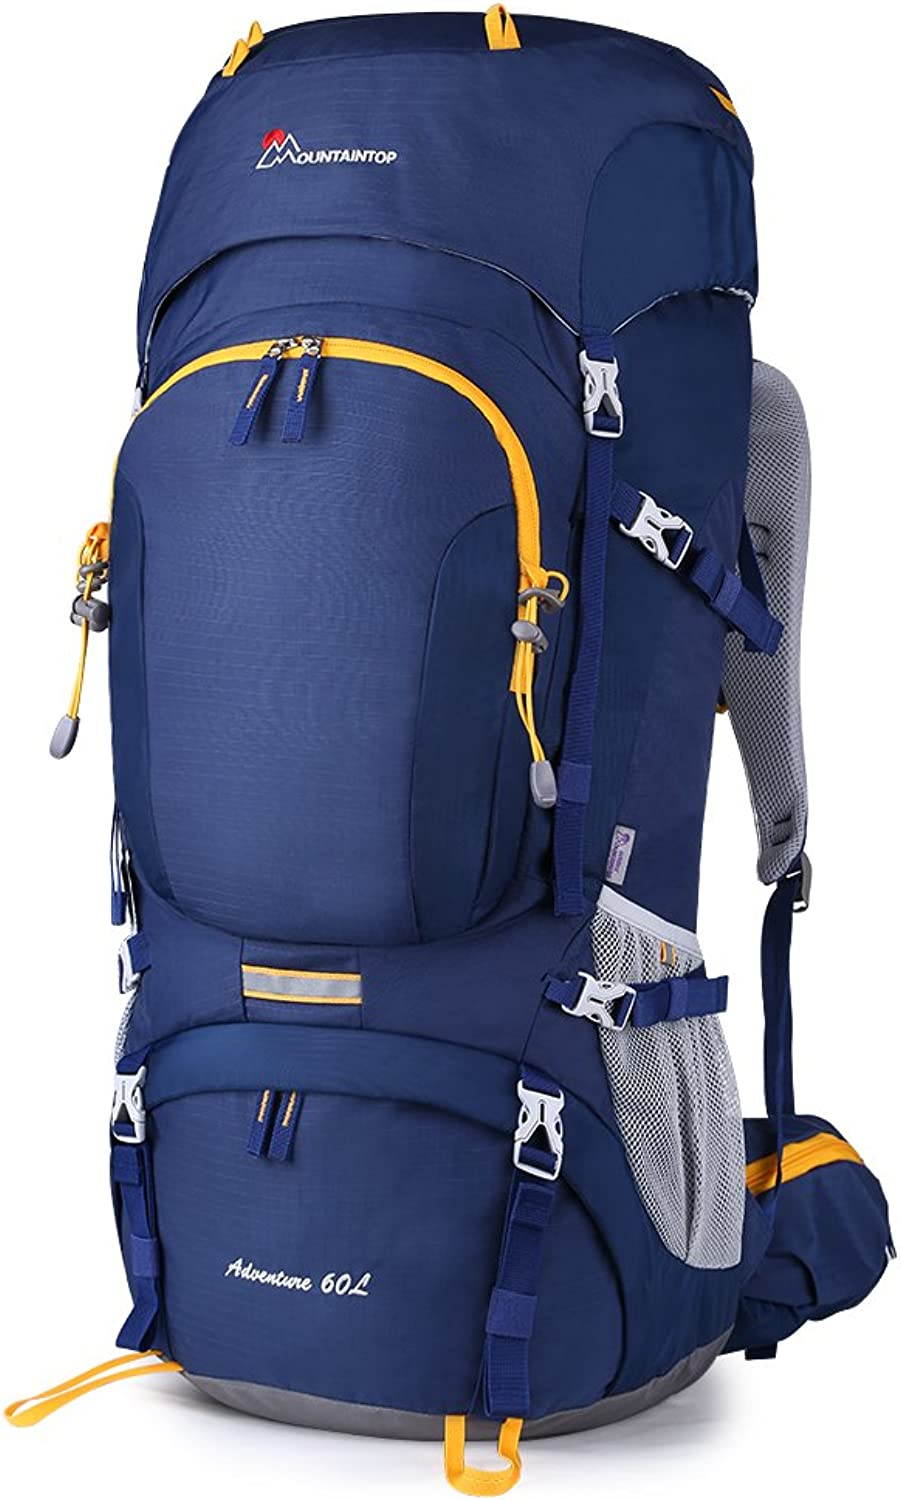 Mountaintop 60L Internal Frame Backpack Hiking Backpacking Packs with Rain Cover YKK zipper buckleM6012